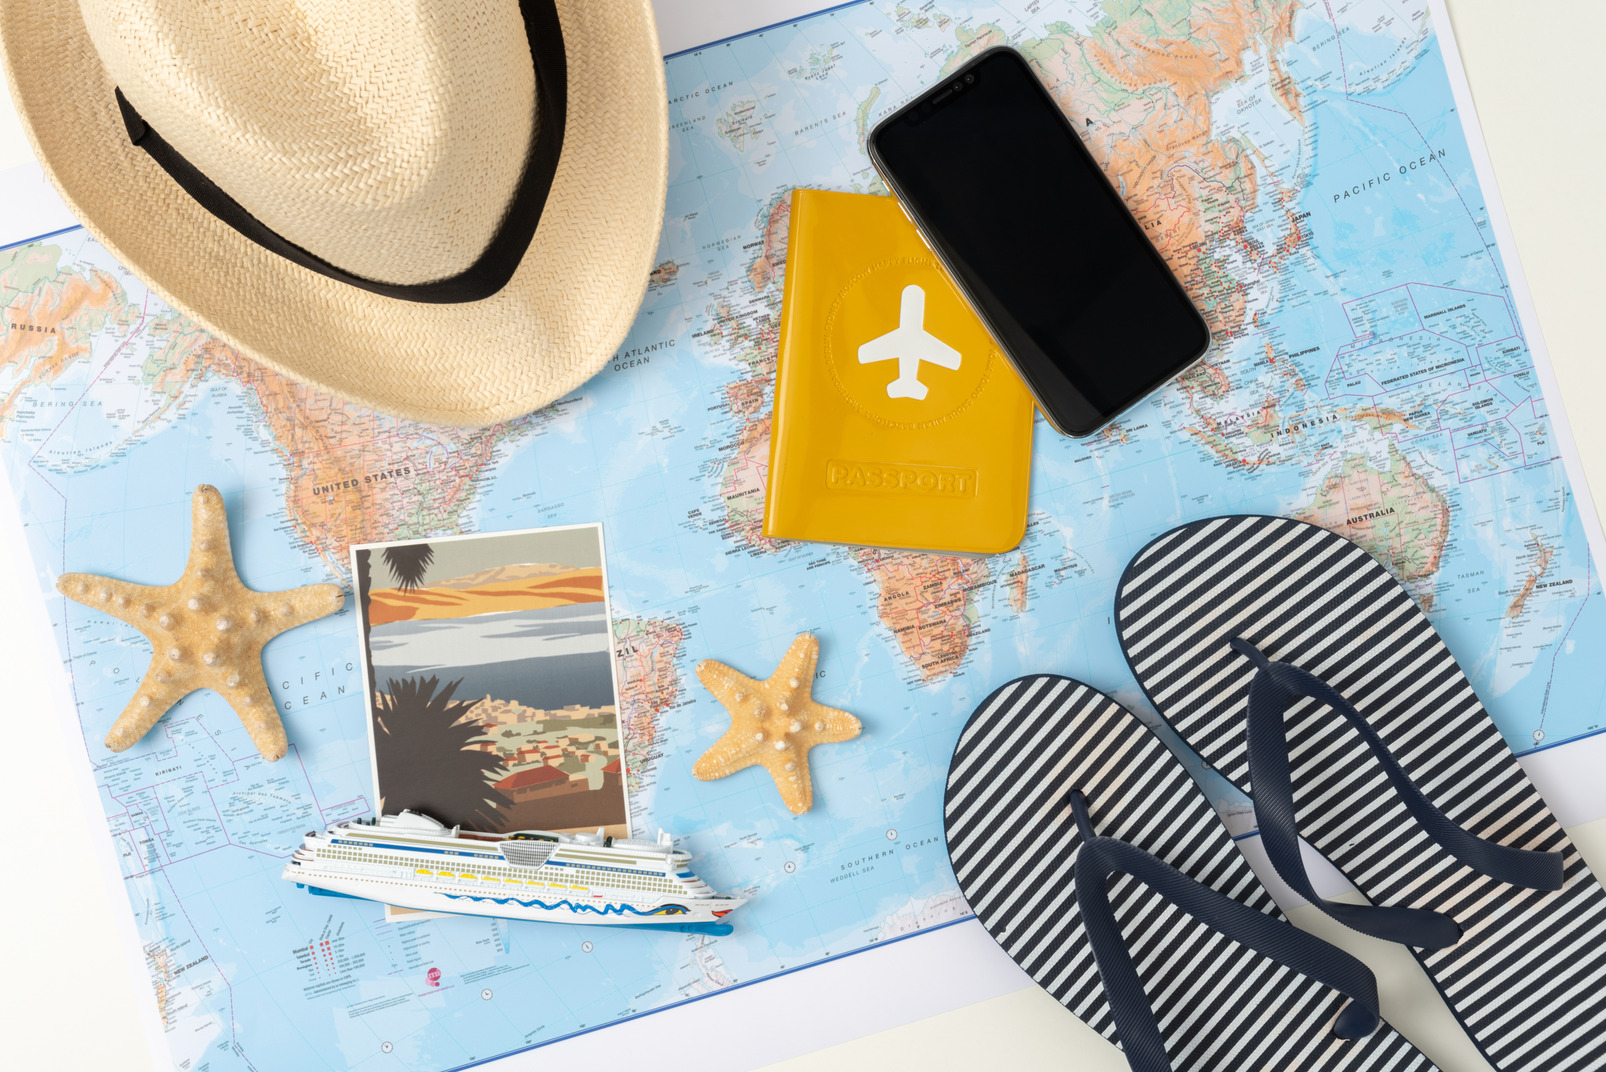 Striped flip-flops, straw hat, an international passport, smartphone and some souvenirs from the latest journey all brought together to create that summer vacation vibe you can feel already